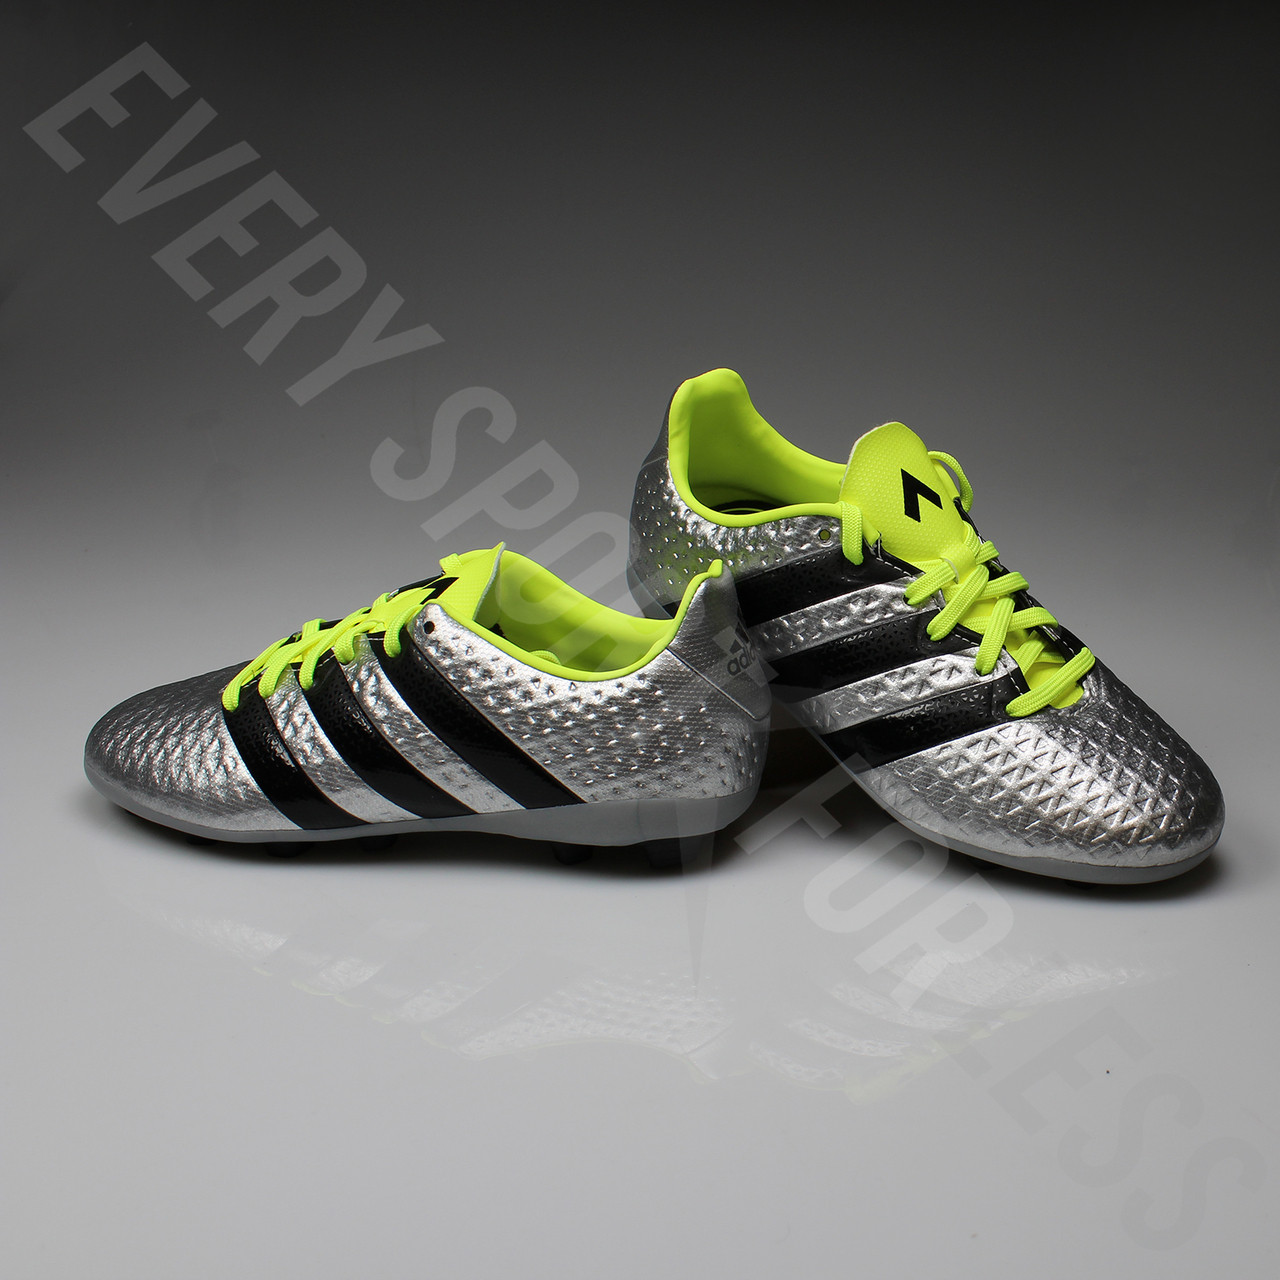 sports shoes 356df 33f8d Adidas Ace 16.4 FxG Junior Soccer Cleat S42142 - Silver, Black, Yellow